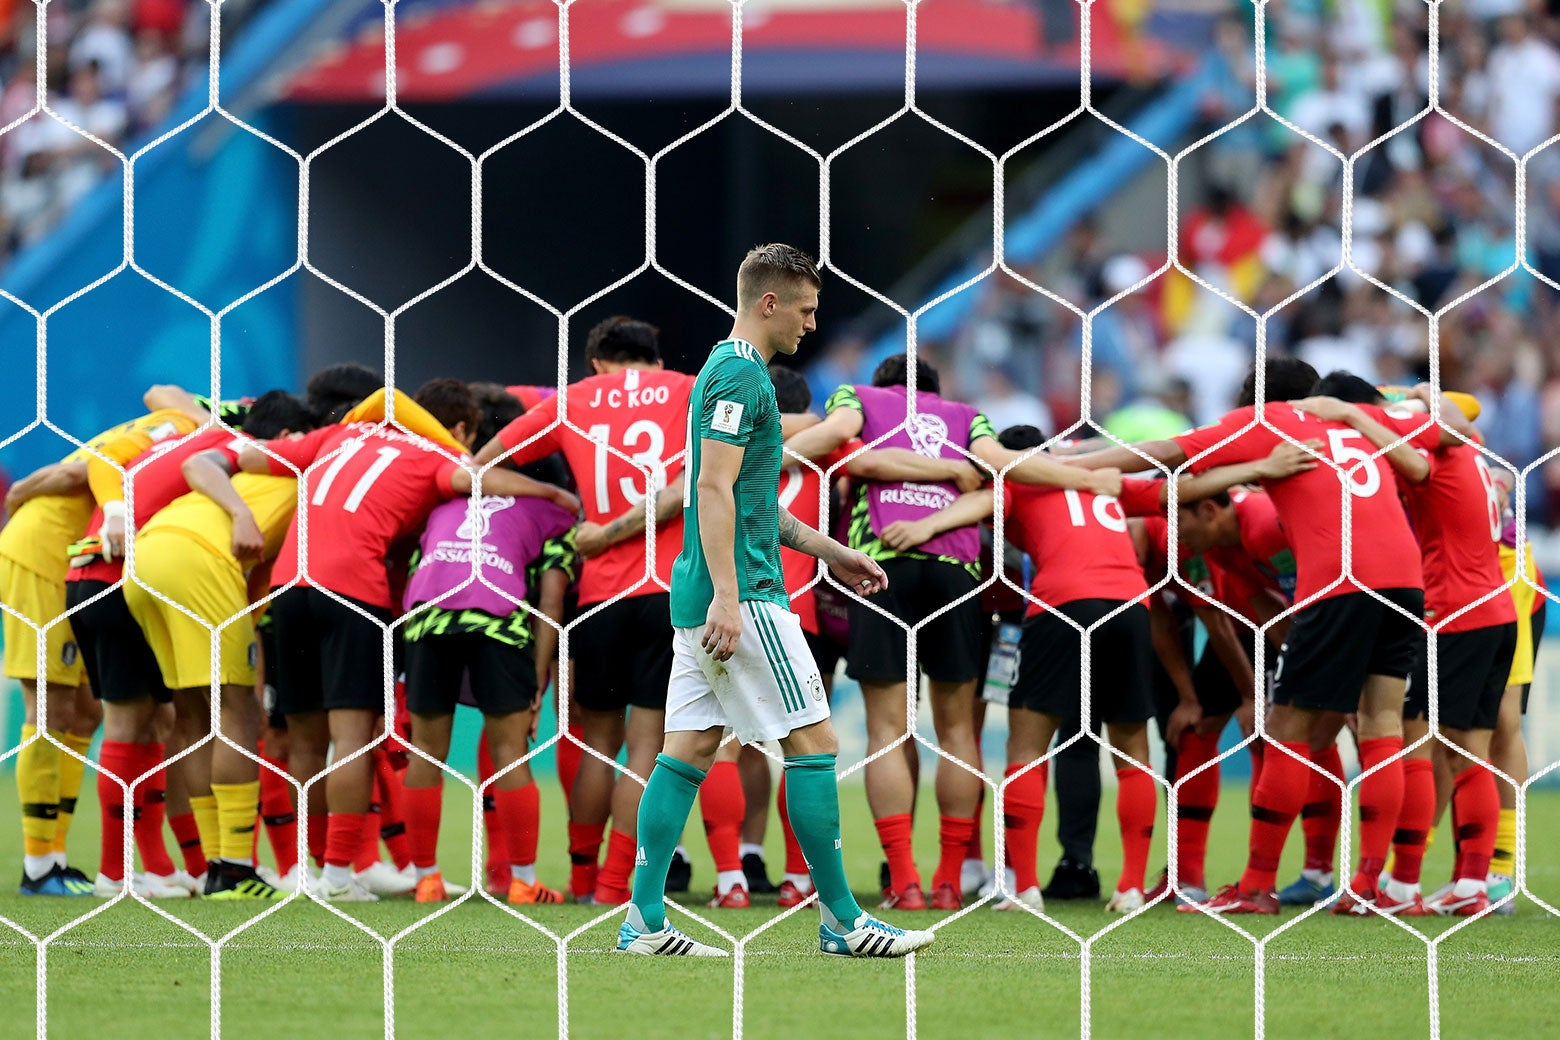 Germany's midfielder Toni Kroos reacts following his team's loss during the Russia 2018 World Cup Group F football match between South Korea and Germany at the Kazan Arena in Kazan on June 27, 2018. (Photo by BENJAMIN CREMEL / AFP) / RESTRICTED TO EDITORIAL USE - NO MOBILE PUSH ALERTS/DOWNLOADS        (Photo credit should read BENJAMIN CREMEL/AFP/Getty Images)